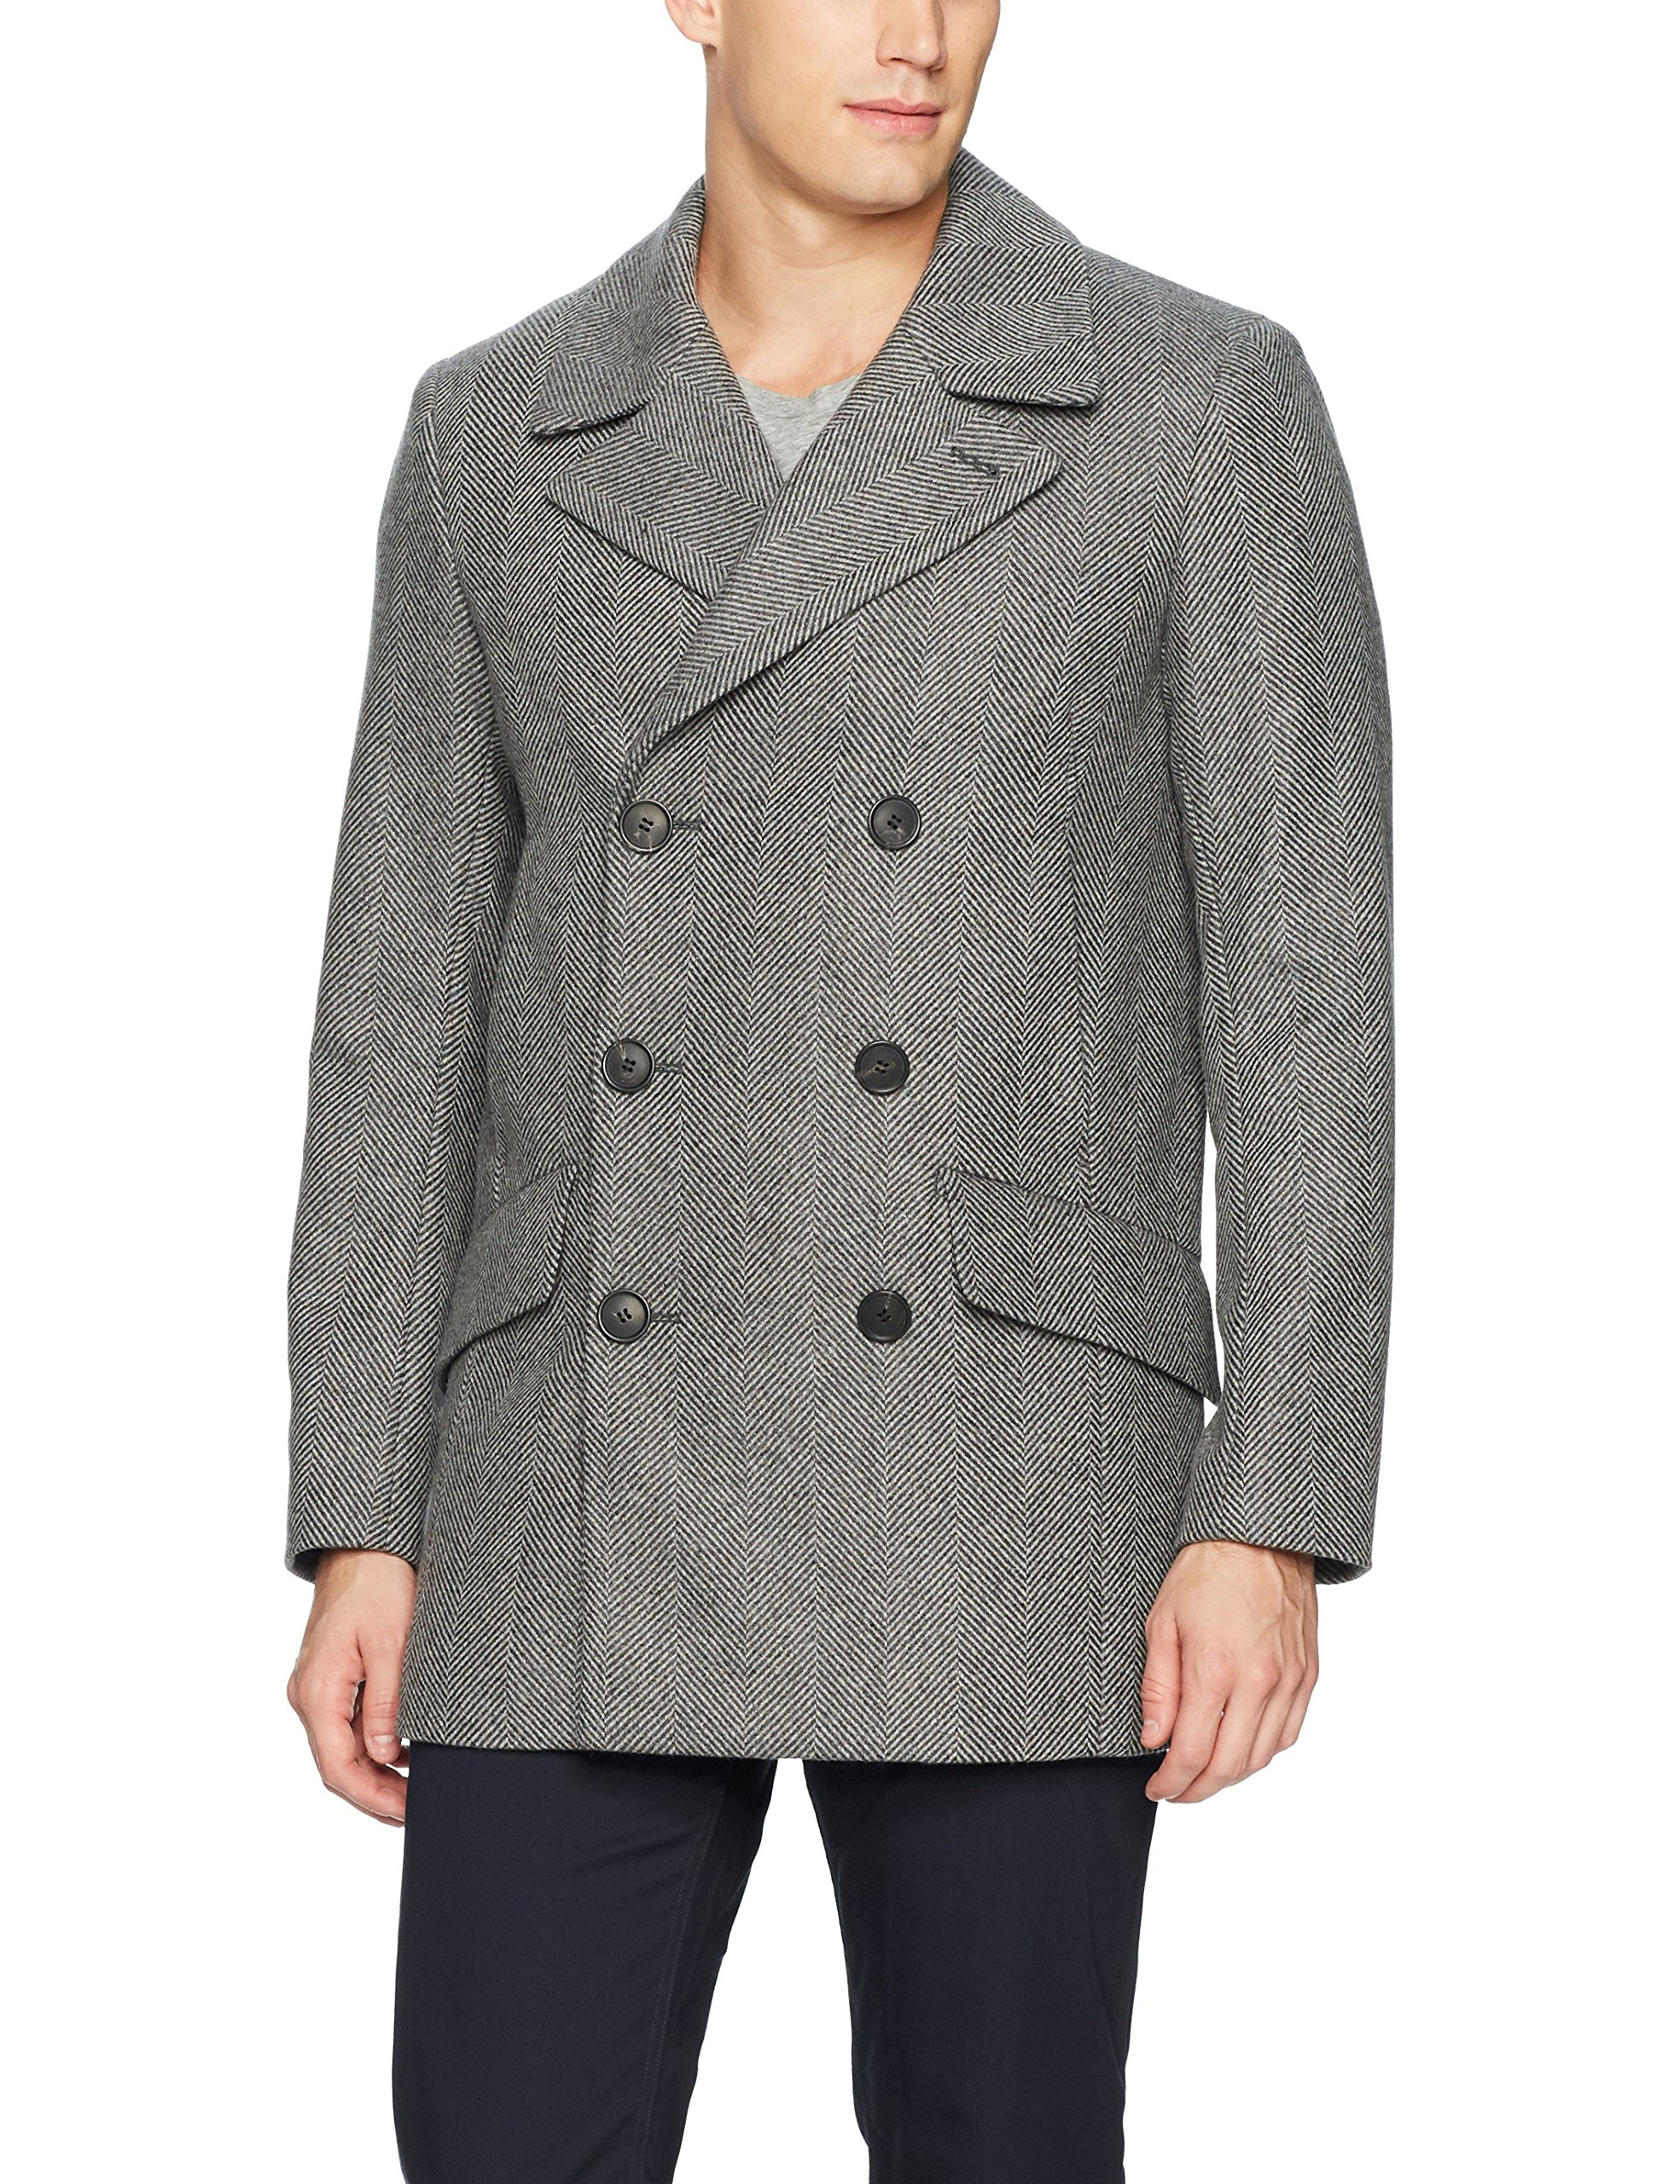 Theory Men's Doublebreasted Pea Coat, Charcoal Multi, M